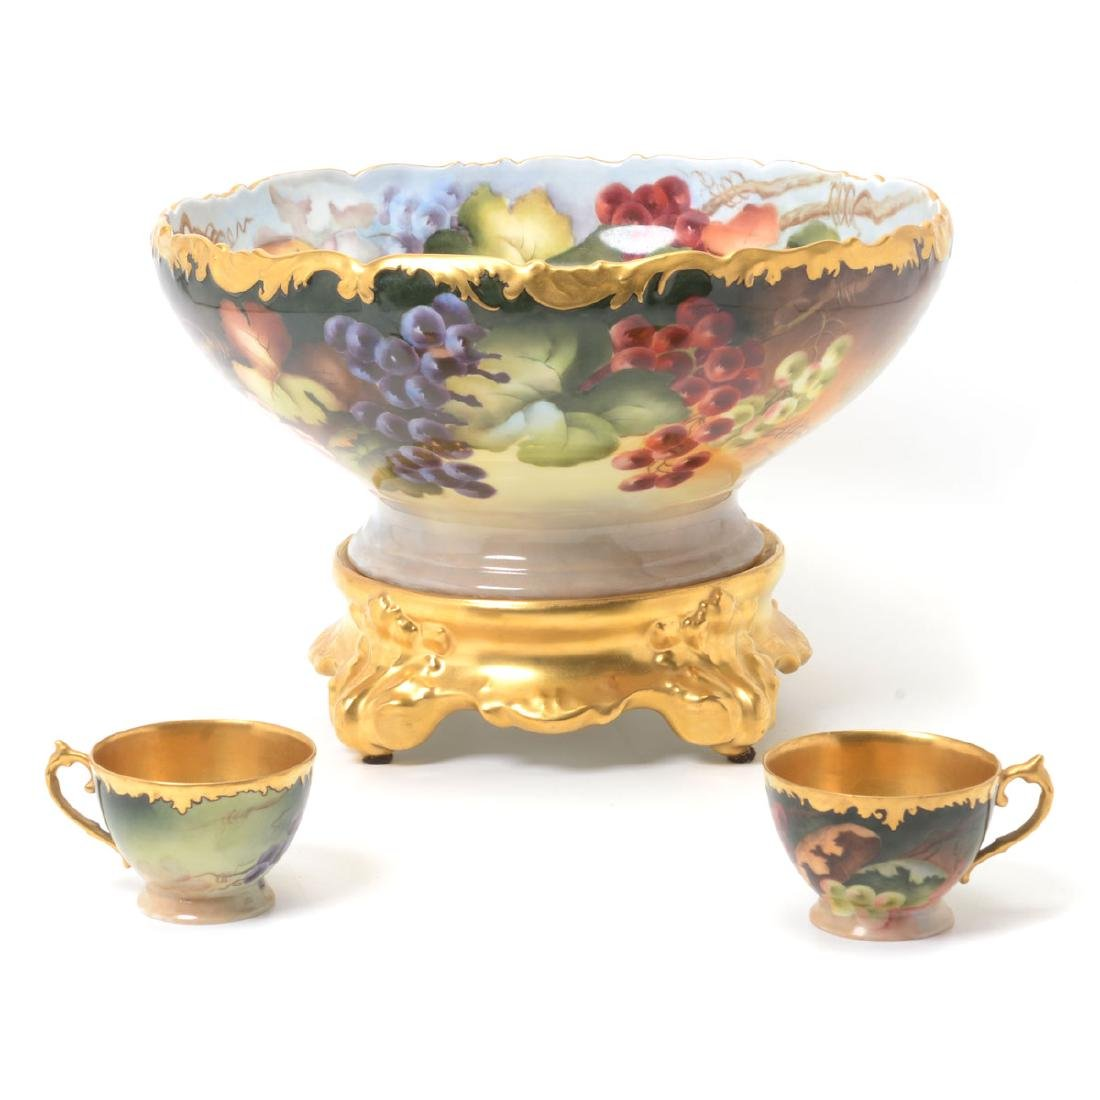 Limoges Punch Set: Bowl on Stand and Ten Cups.